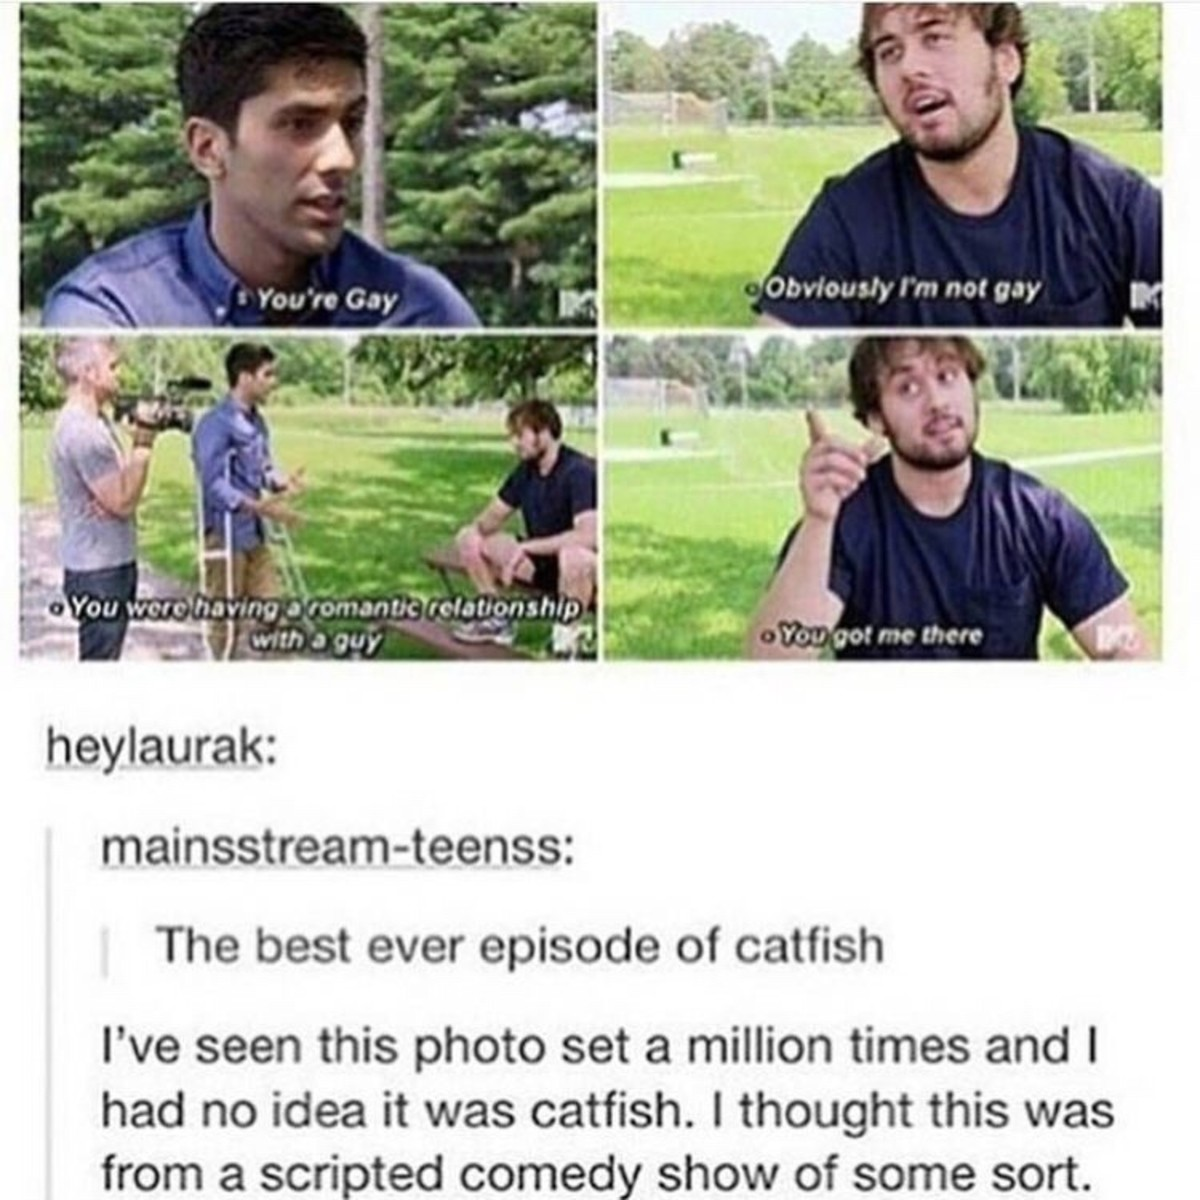 gay. .. they left out a bit, mostly the catfishing bit